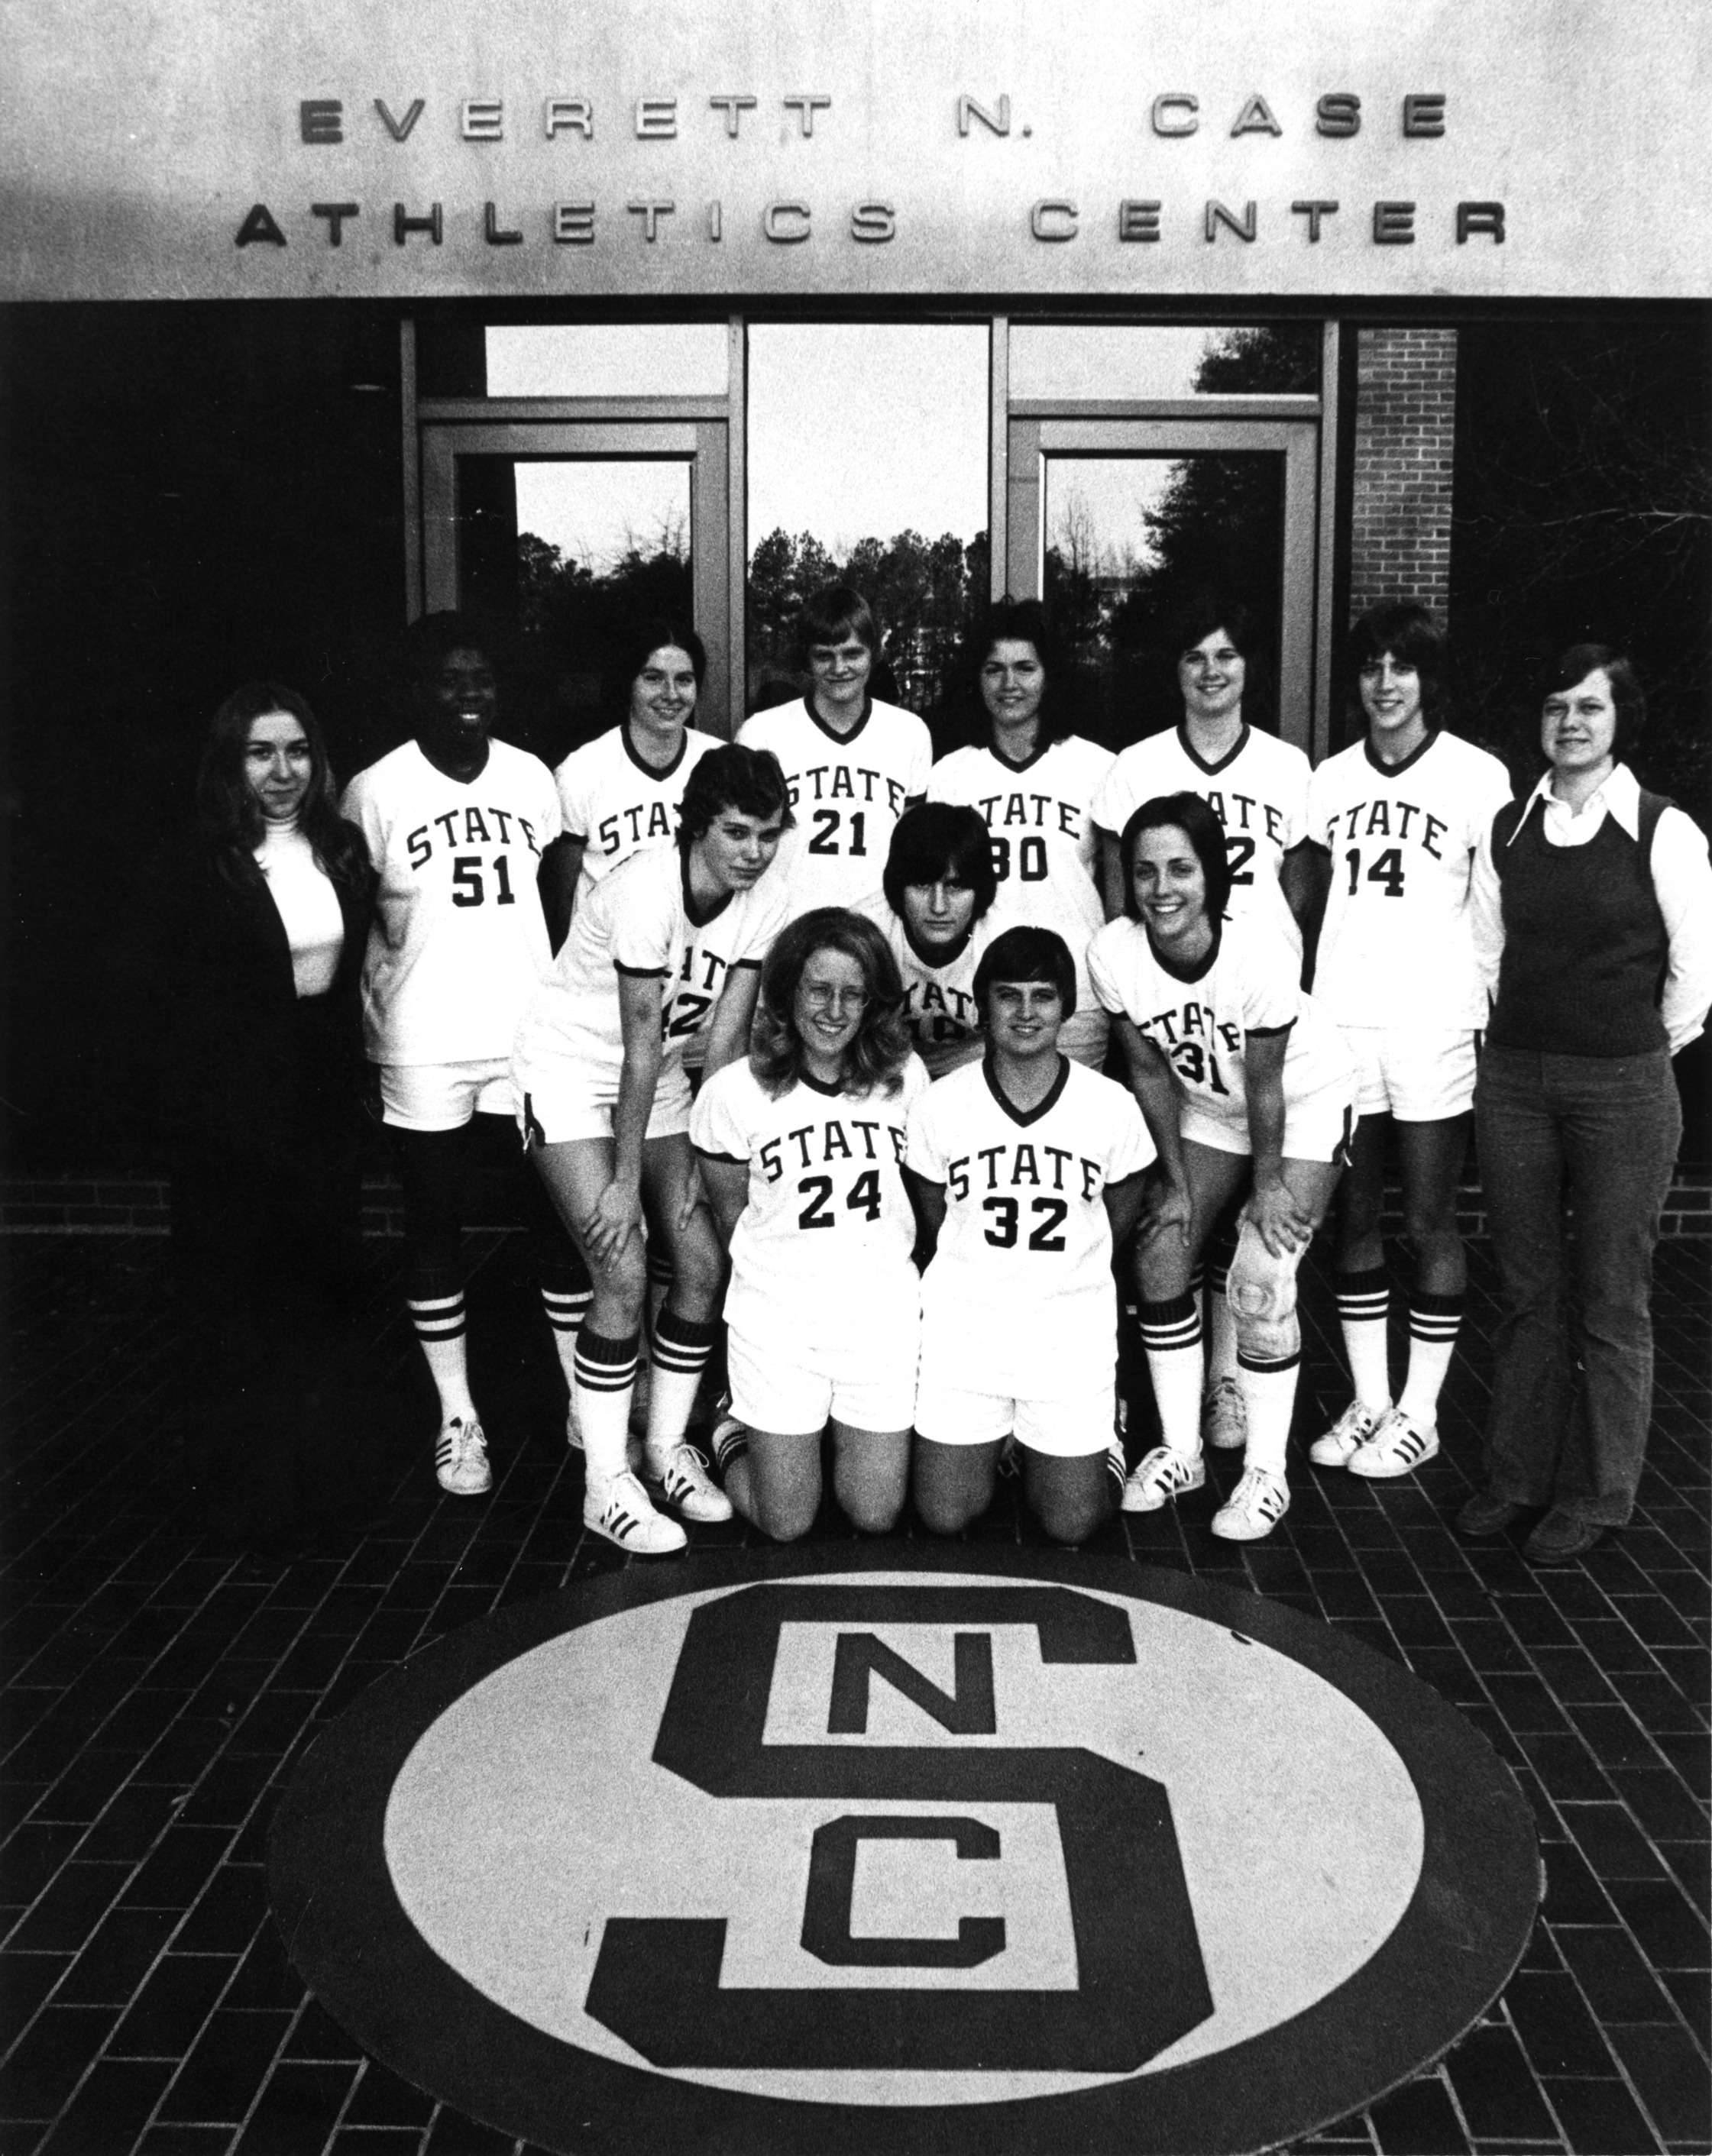 1975-1976 N.C. State University women's basketball team